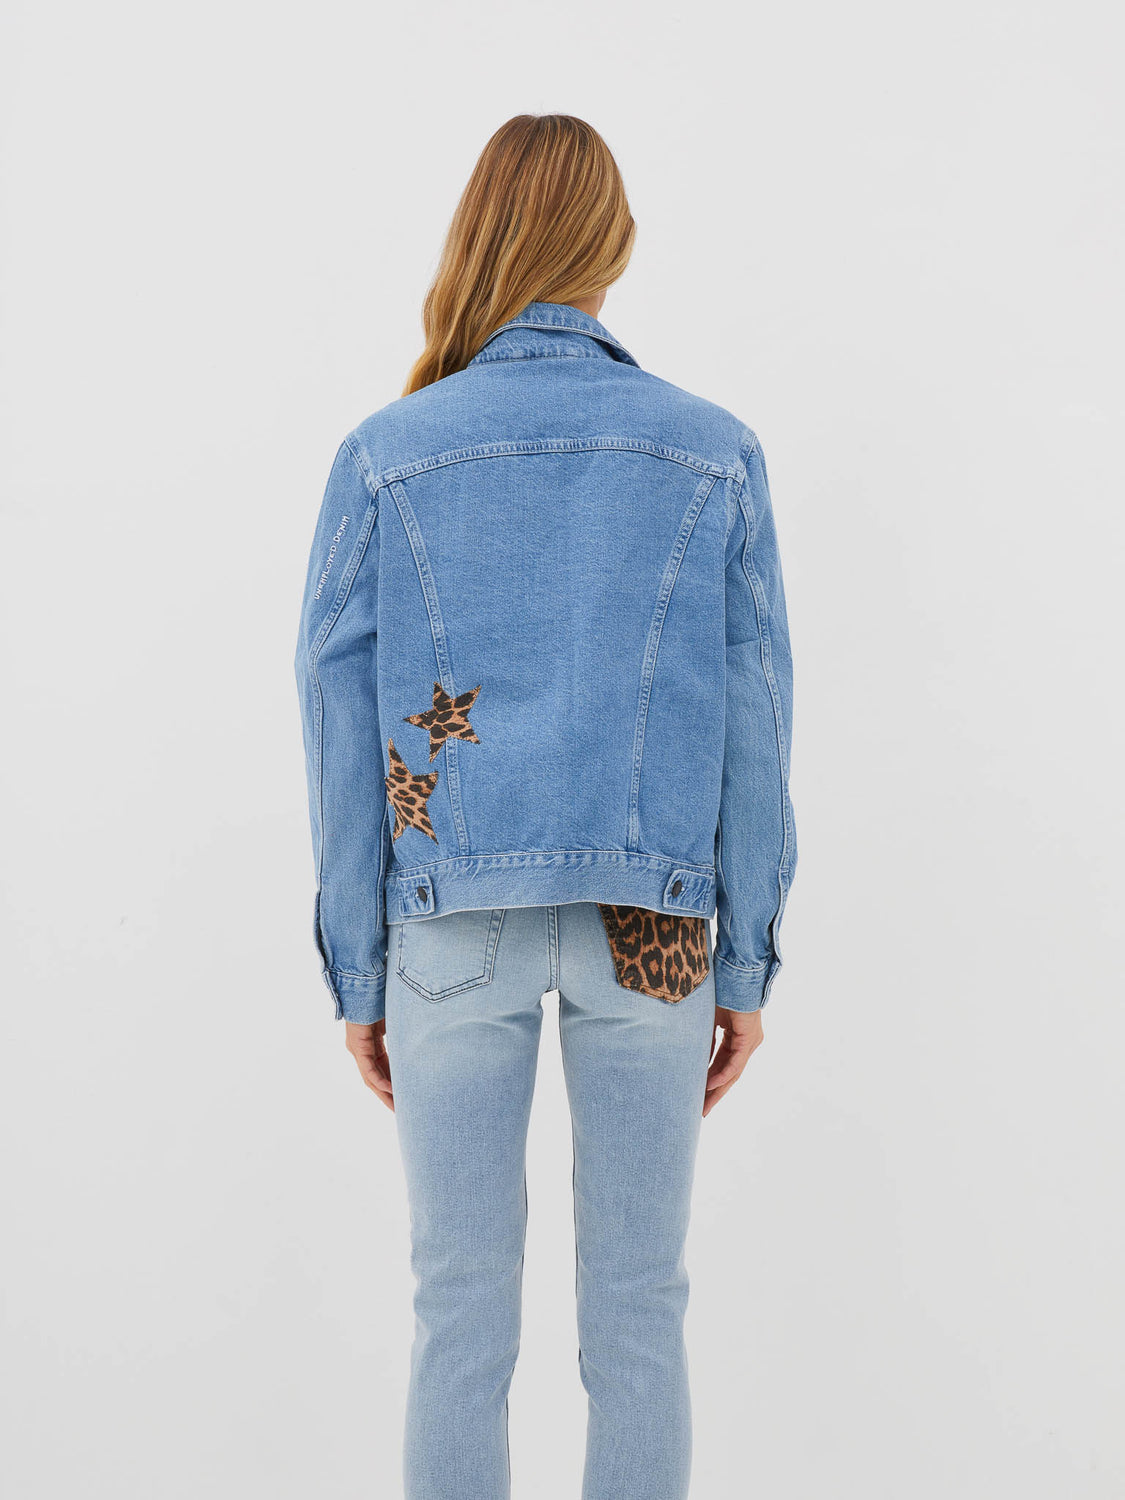 Cheetah Denim Stars